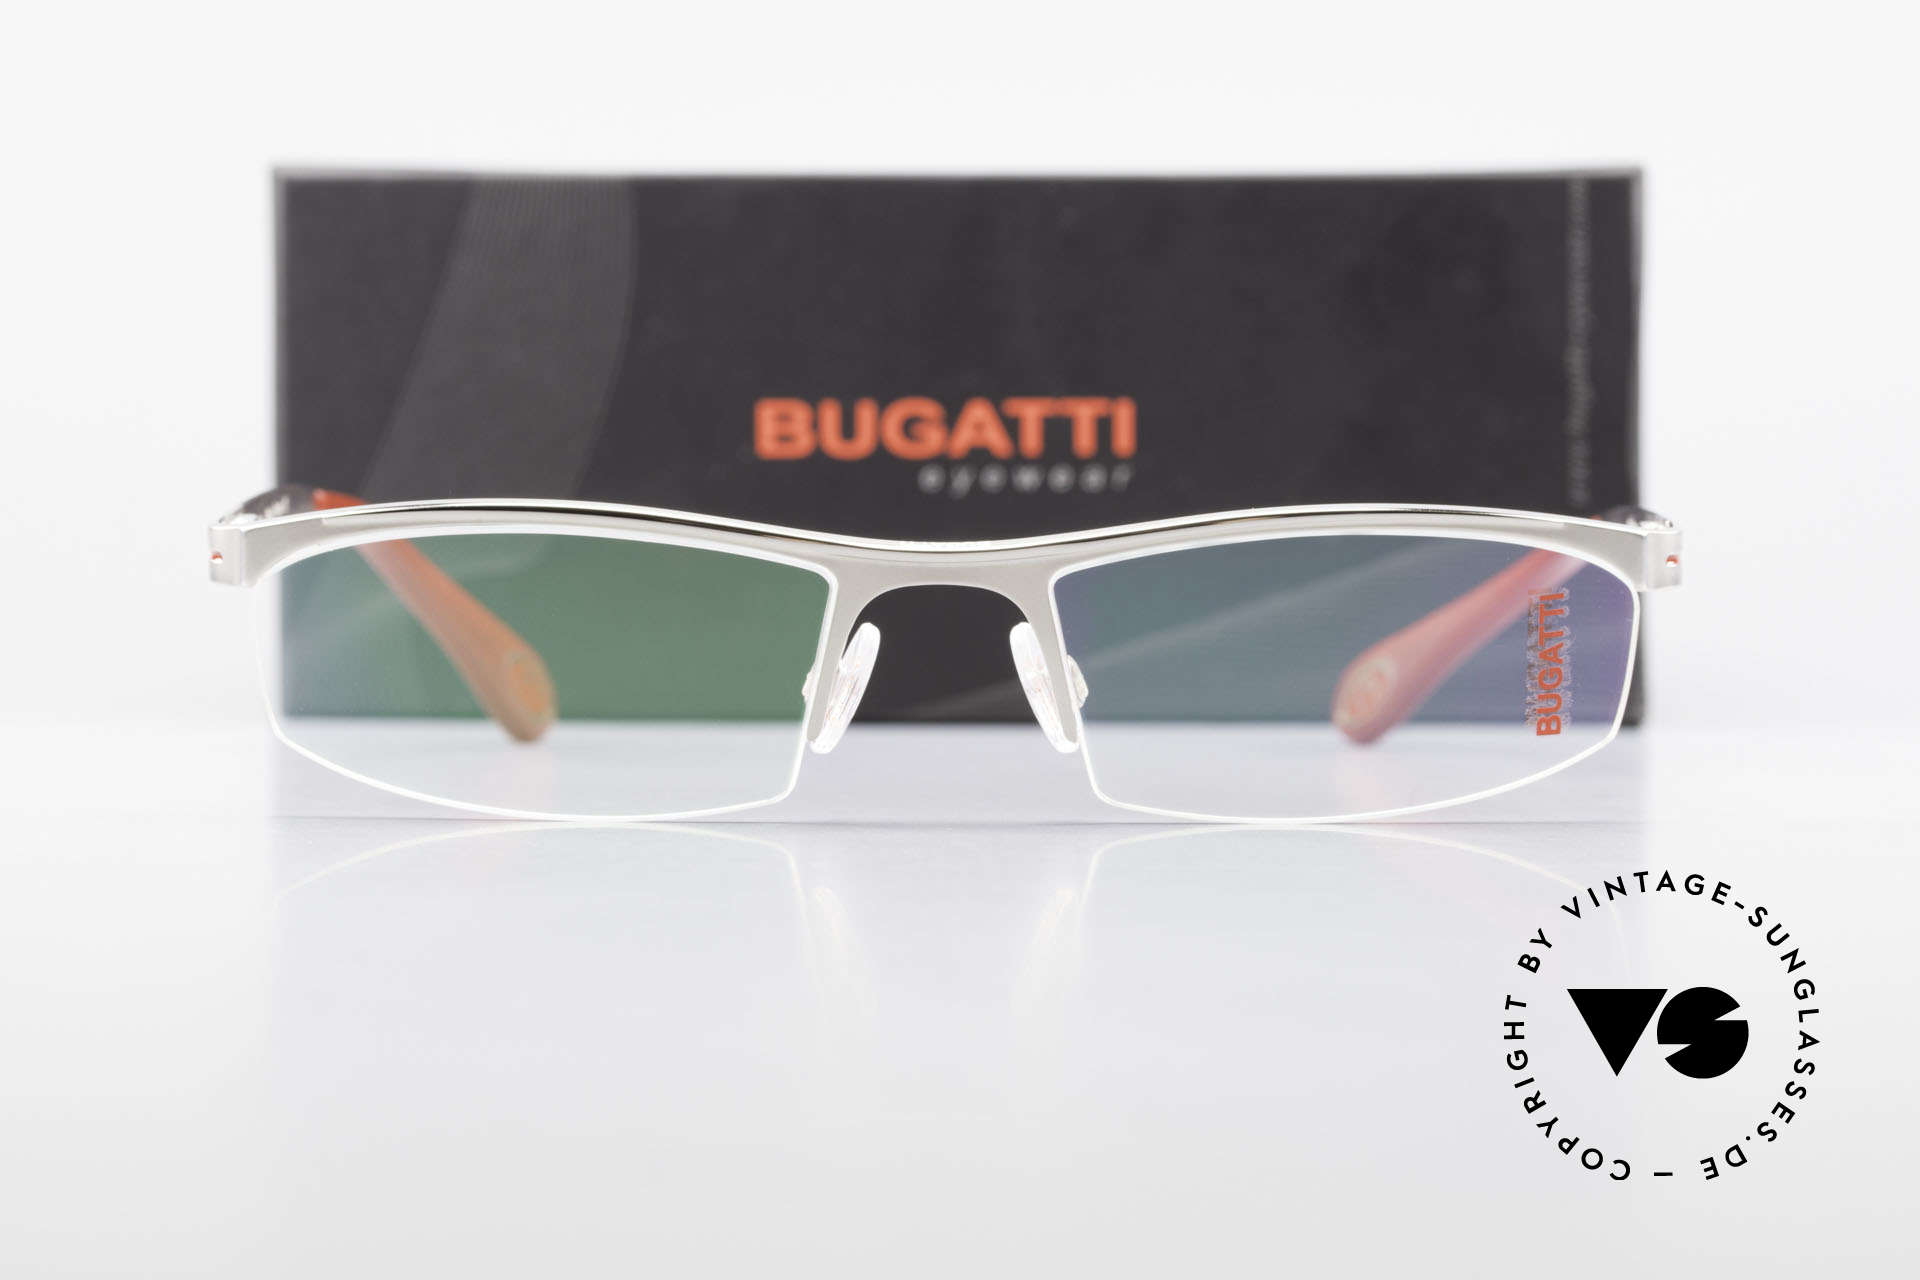 Bugatti 495 Luxury Palladium Frame Nylor, Size: large, Made for Men